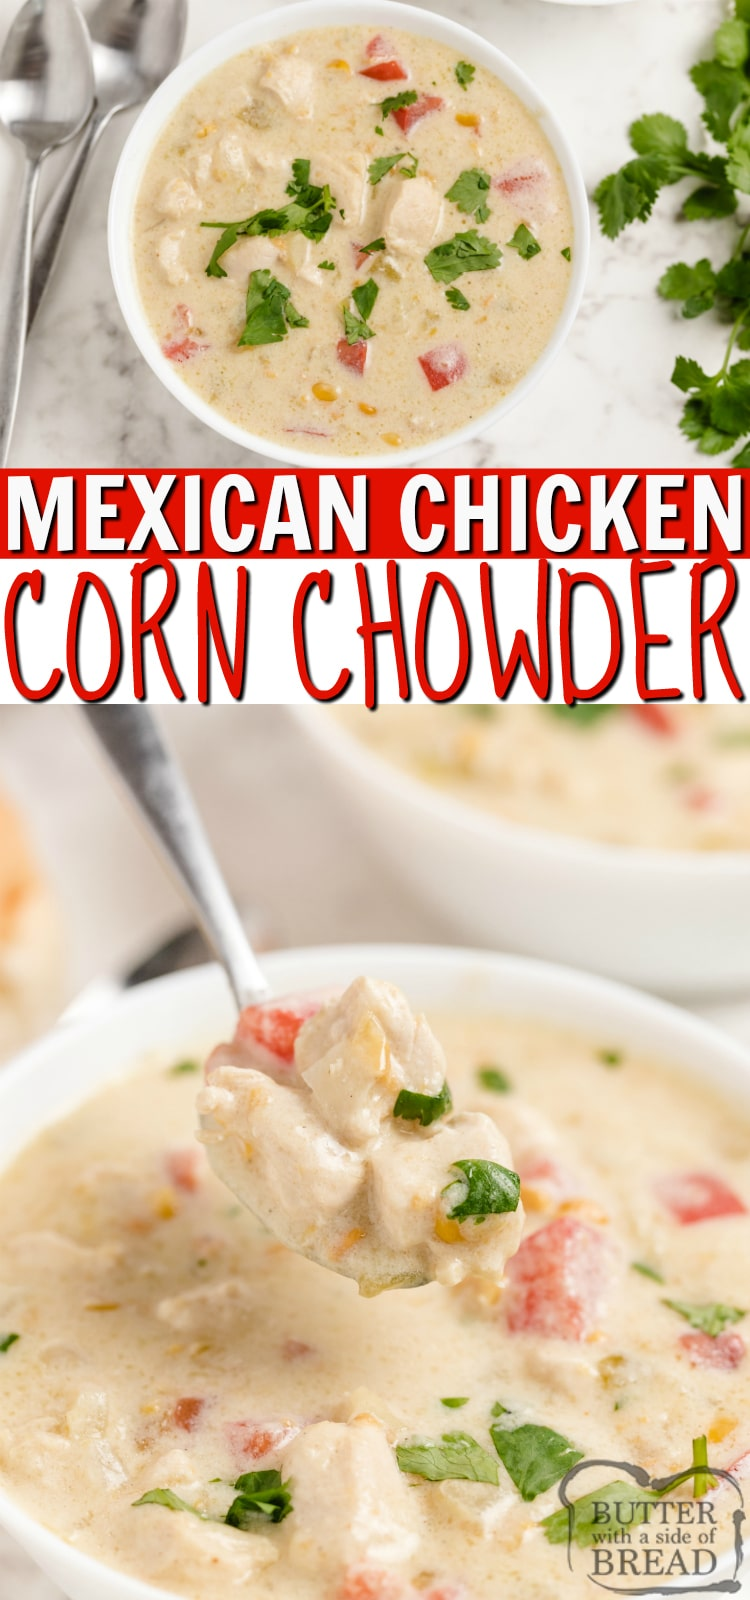 Mexican Chicken Corn Chowder is a simple corn chowder recipe with a southwestern twist. Lots of flavor in a delicious soup recipe that can be made in less than 30 minutes.